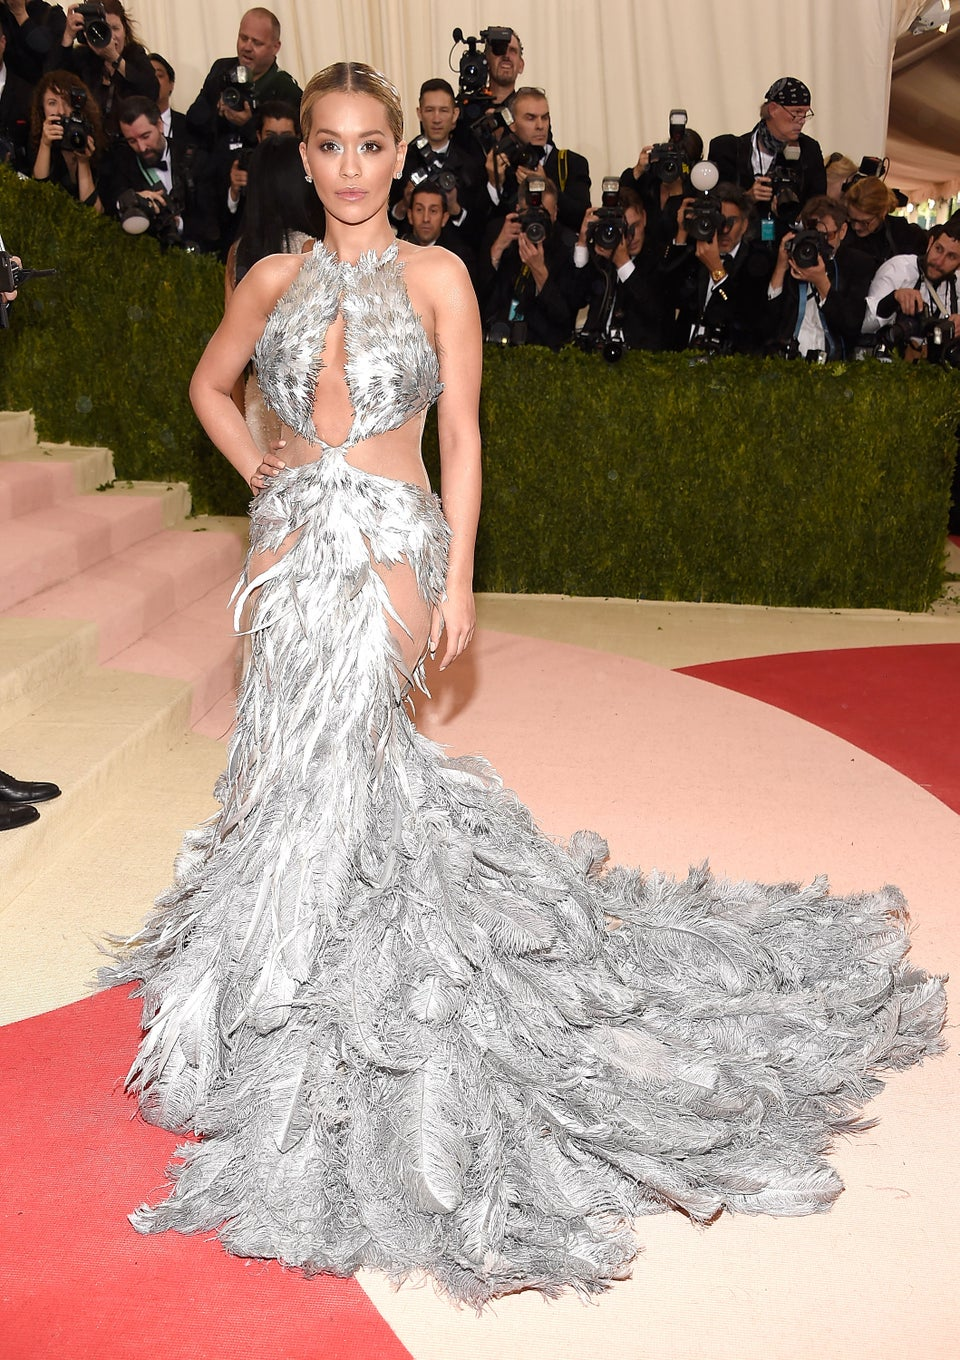 Rita Ora Hangs Out with Beyoncé at Met Gala, Letting the World Know She's Not 'Becky with the Good Hair'